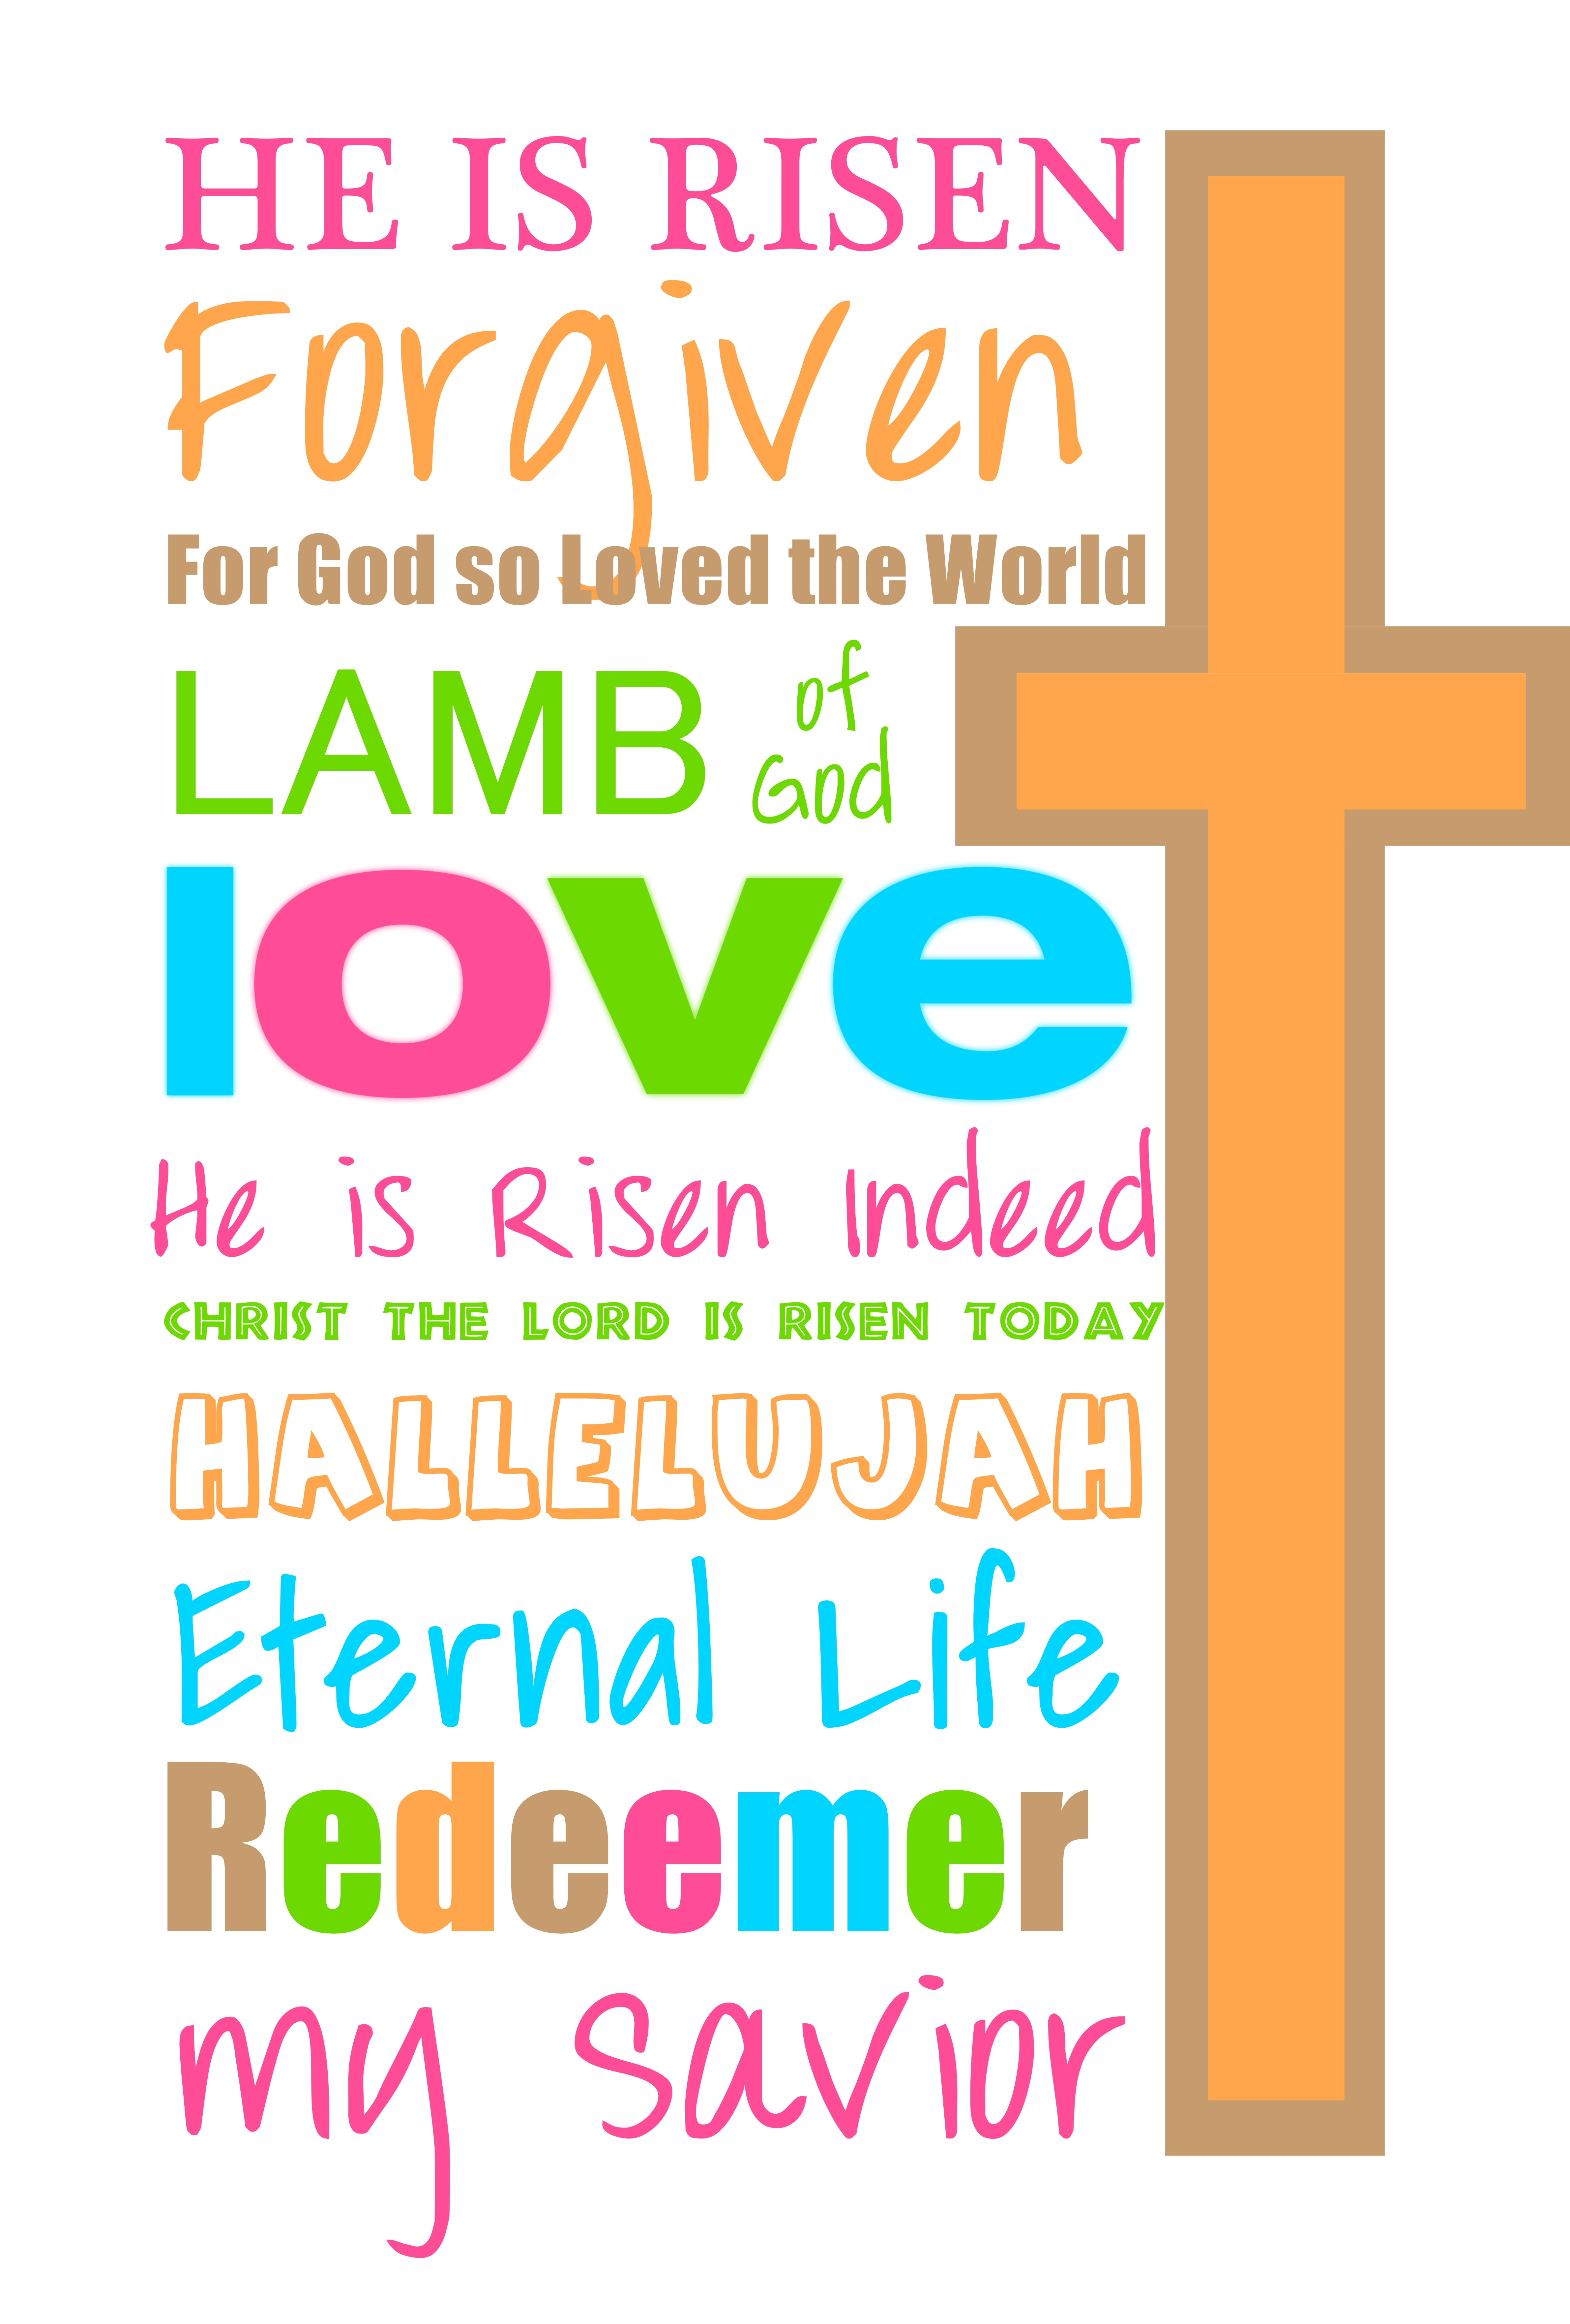 Easter Clipart Religious . Download. 3f4-Easter Clipart Religious . Download. 3f4965533fb40e5c6673ff18c17c1c .-9